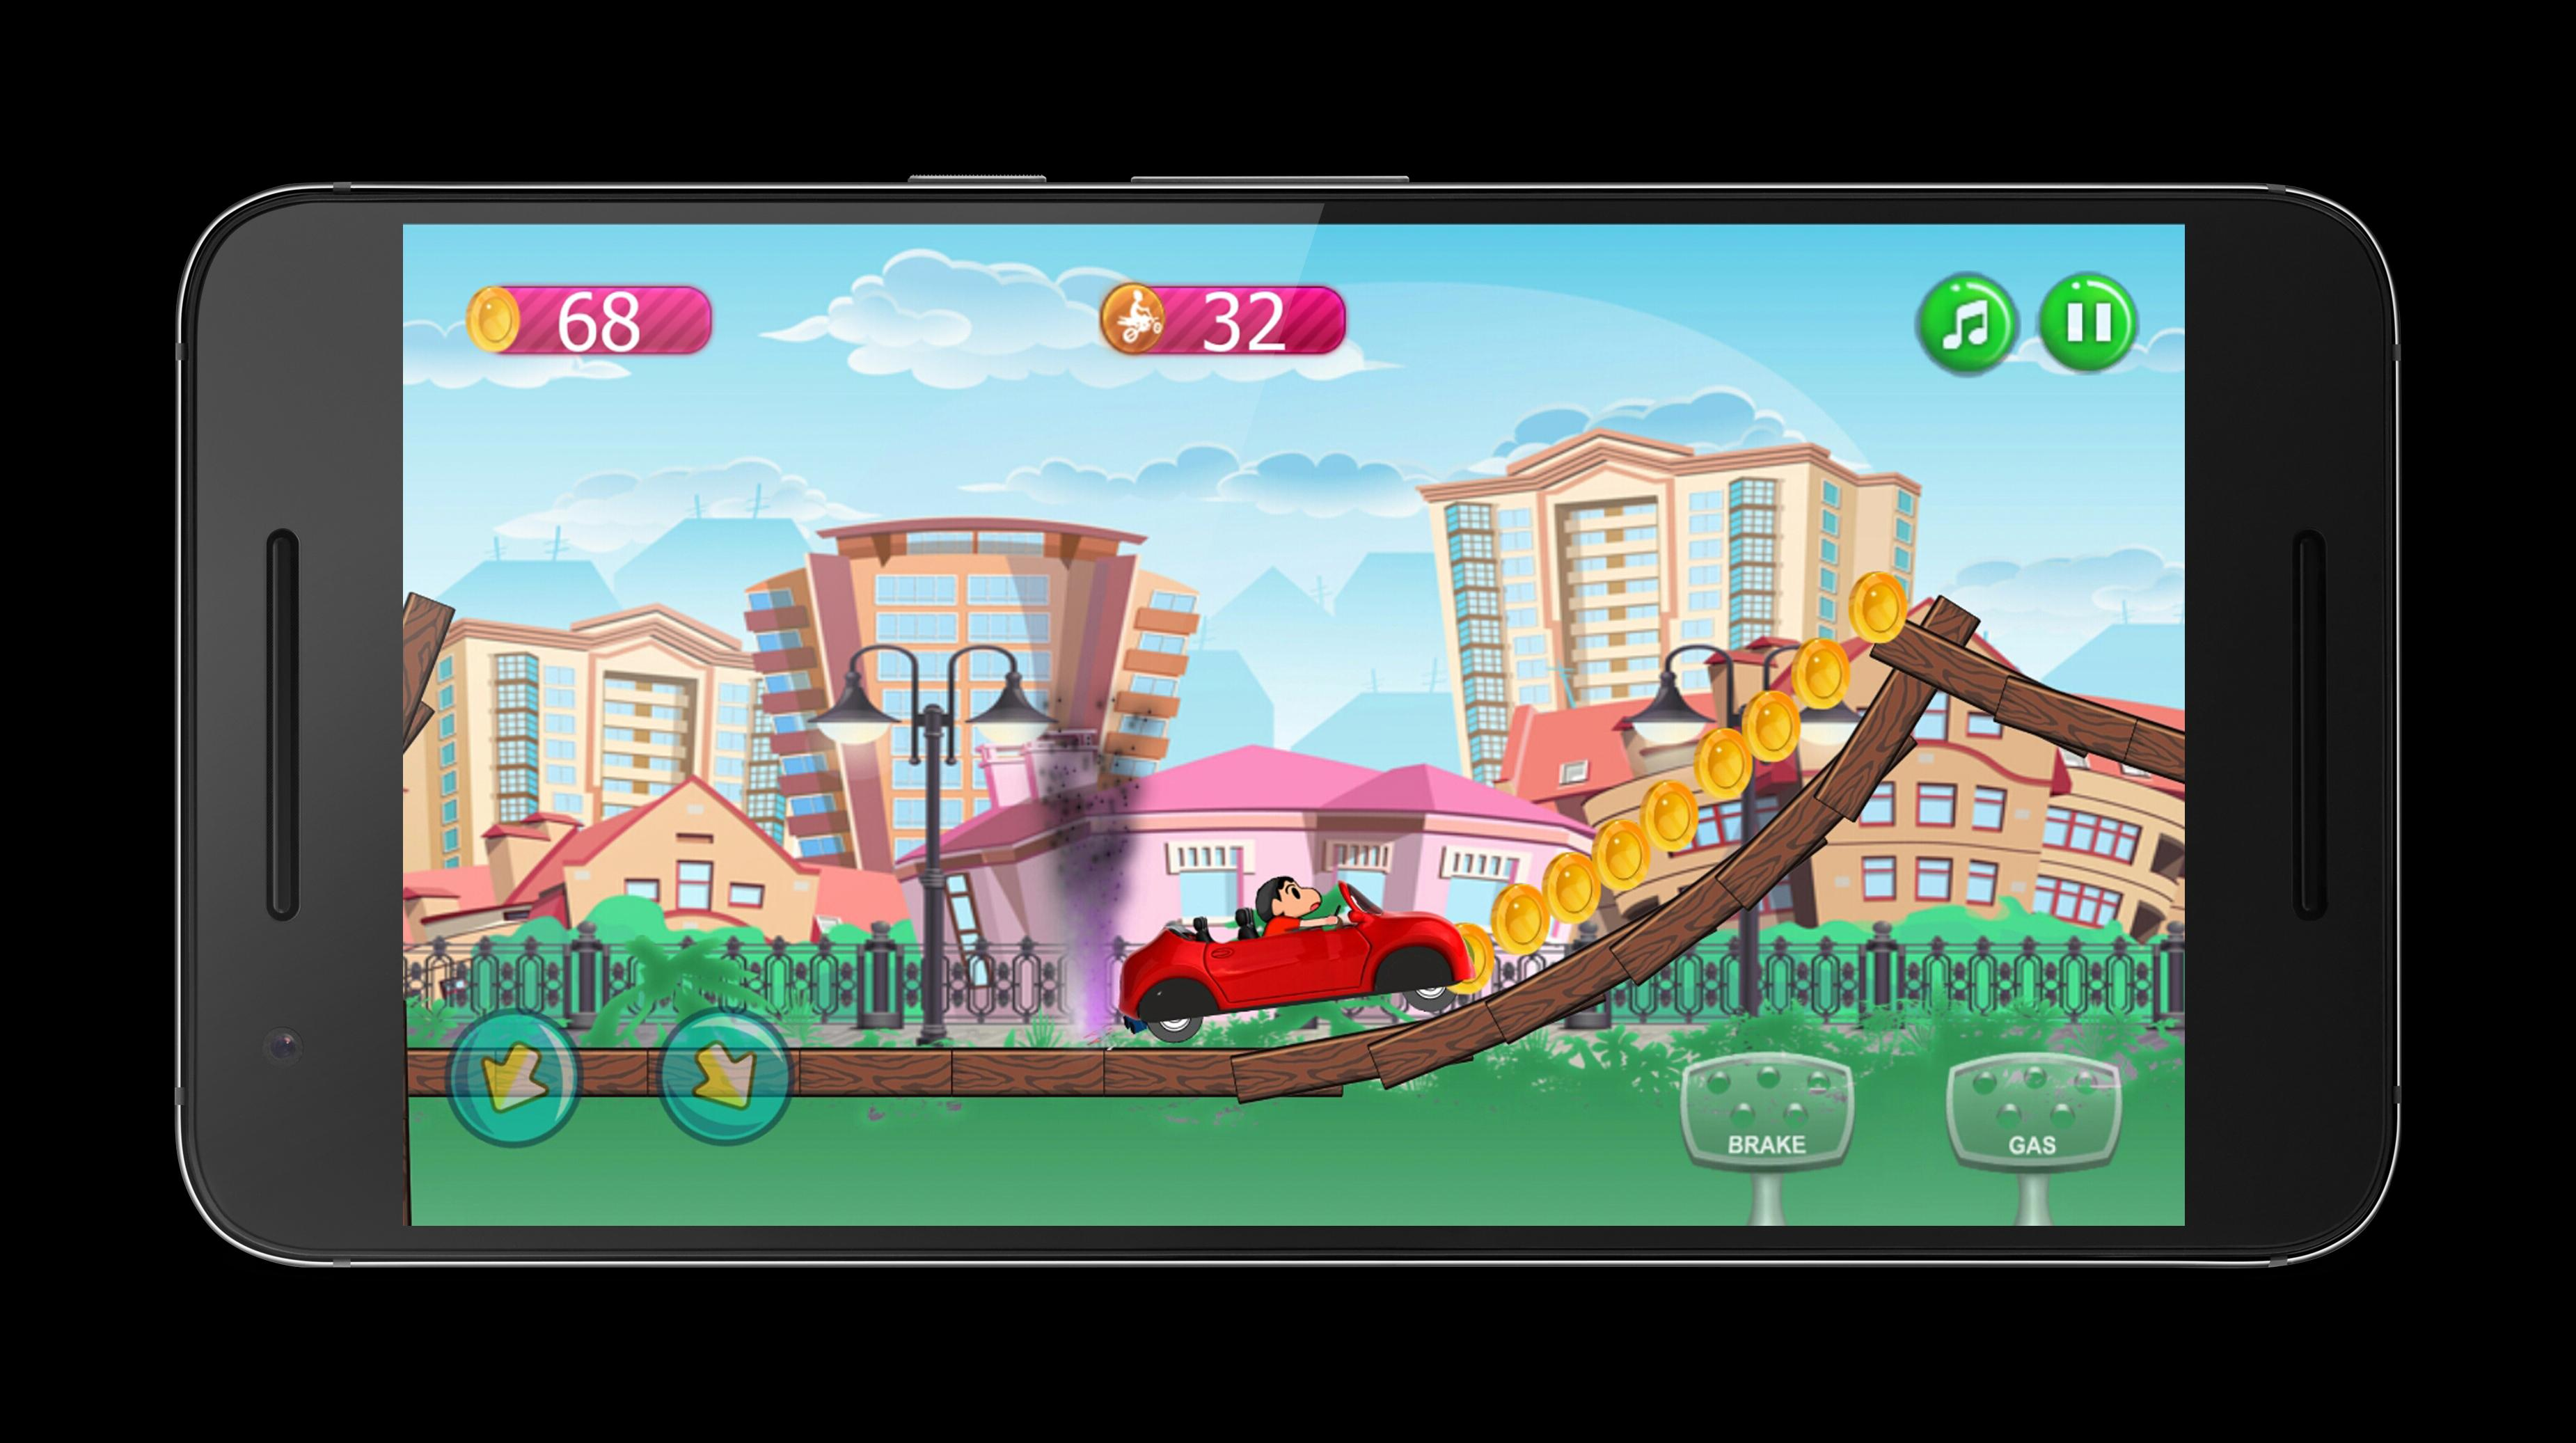 Shin Chan Car Driver For Android Apk Download